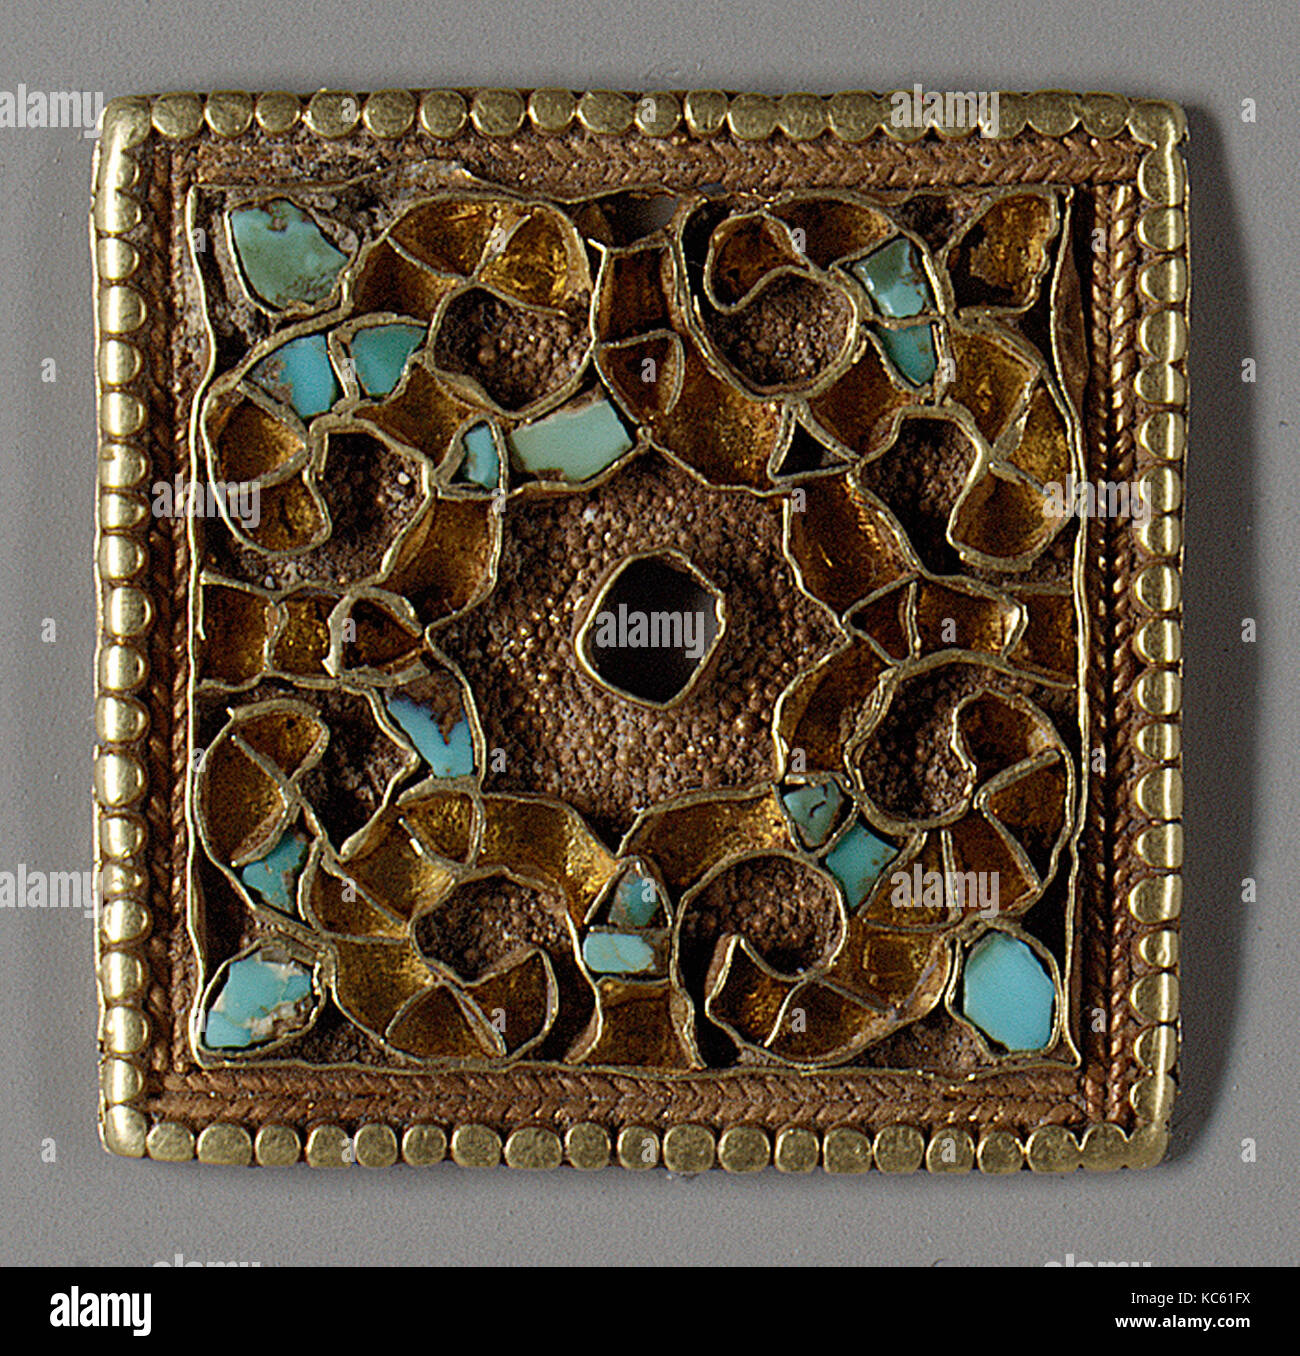 Ornamented Plaques, 7th–9th century, Eastern Central Asia or northern China, Gold with turquoise inlay, Square plaque - Stock Image